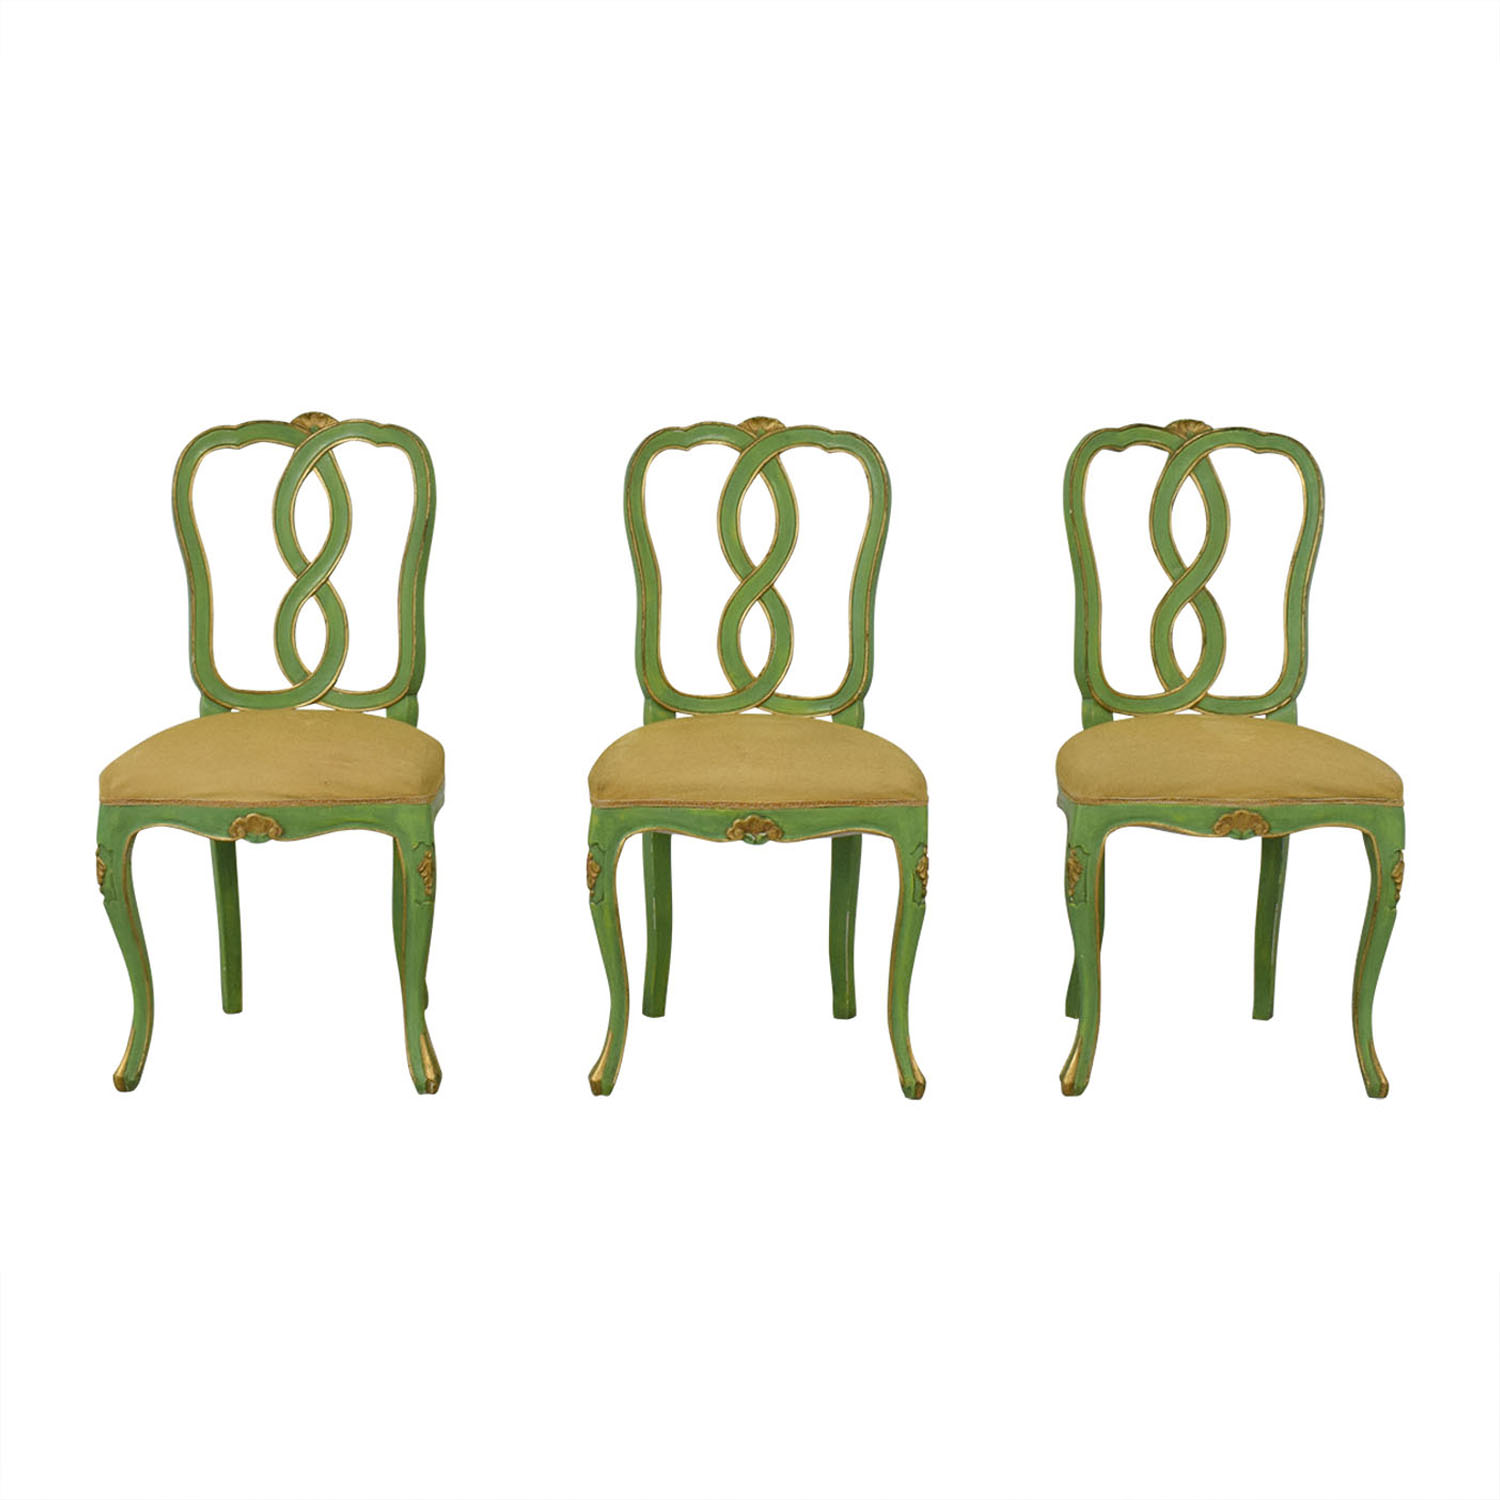 Bergdorf Goodman Bergdorf Goodman Green and Gold Chairs coupon